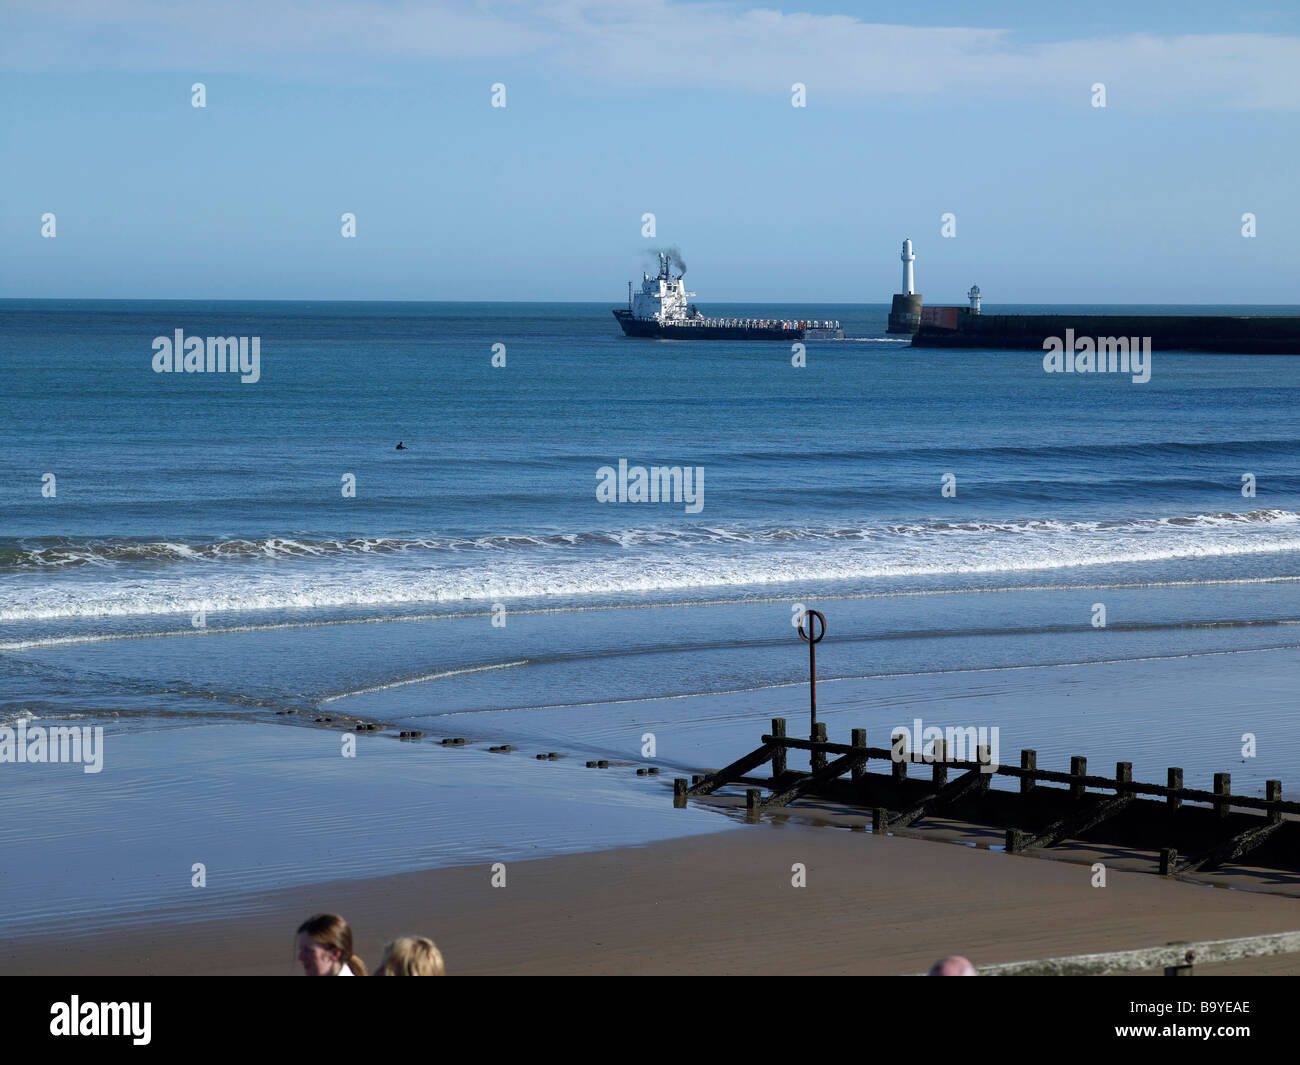 Oil Industry ship leaving the Harbour, from the The Esplanade at Aberdeen, North East Scotland - Stock Image